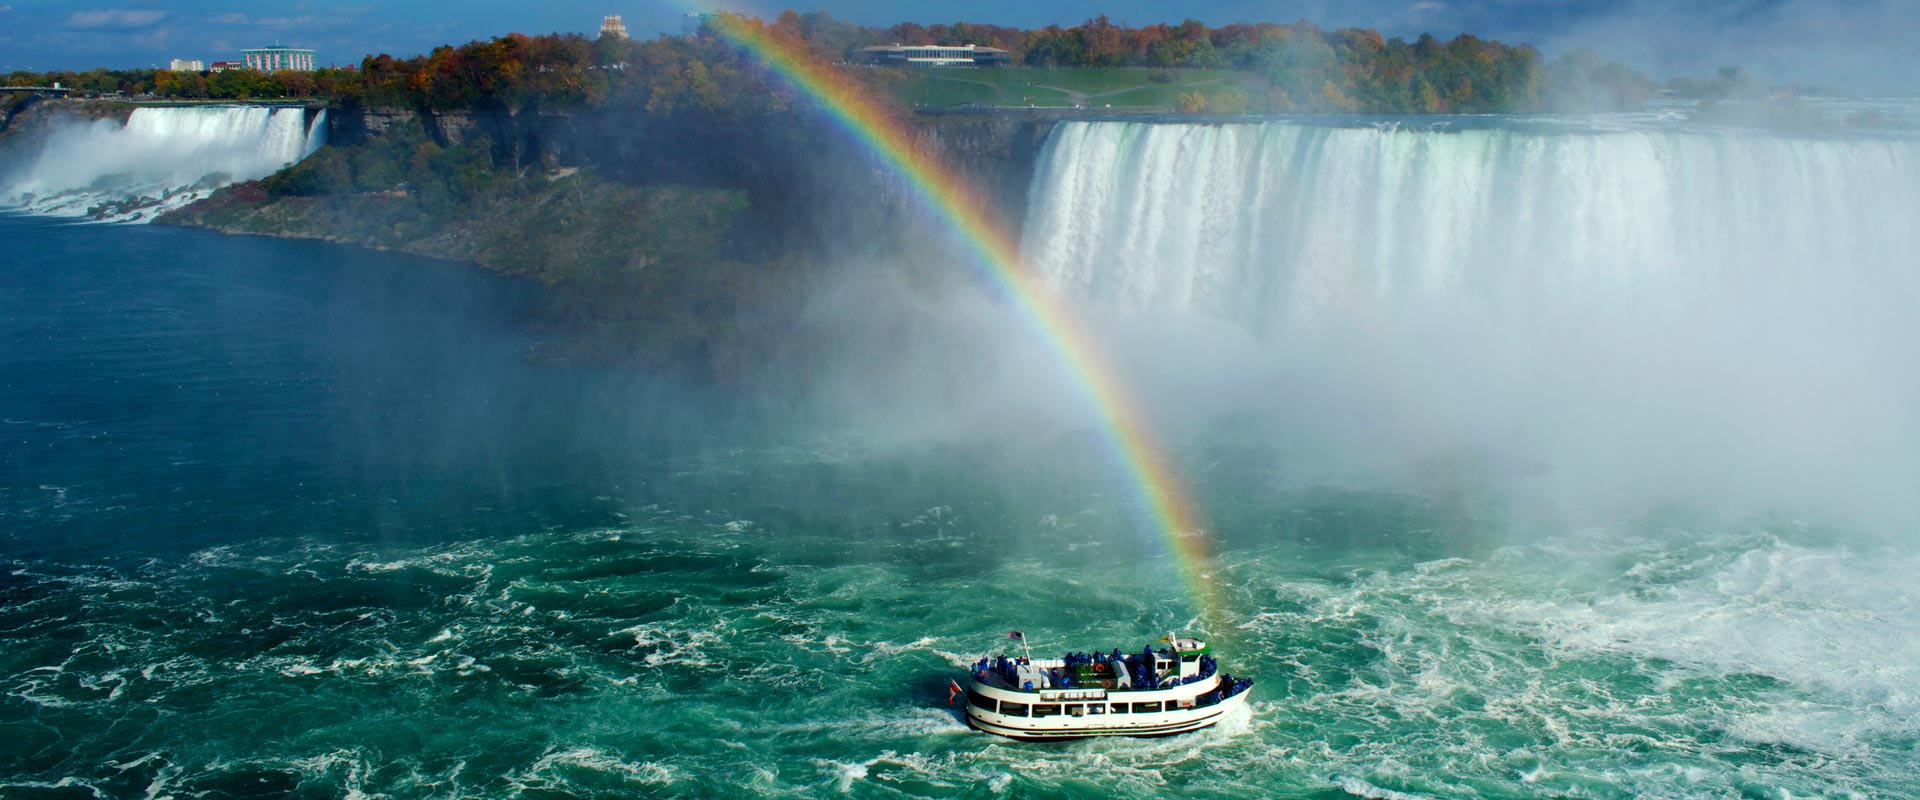 One Day Tour to Niagara Falls from Etobicoke